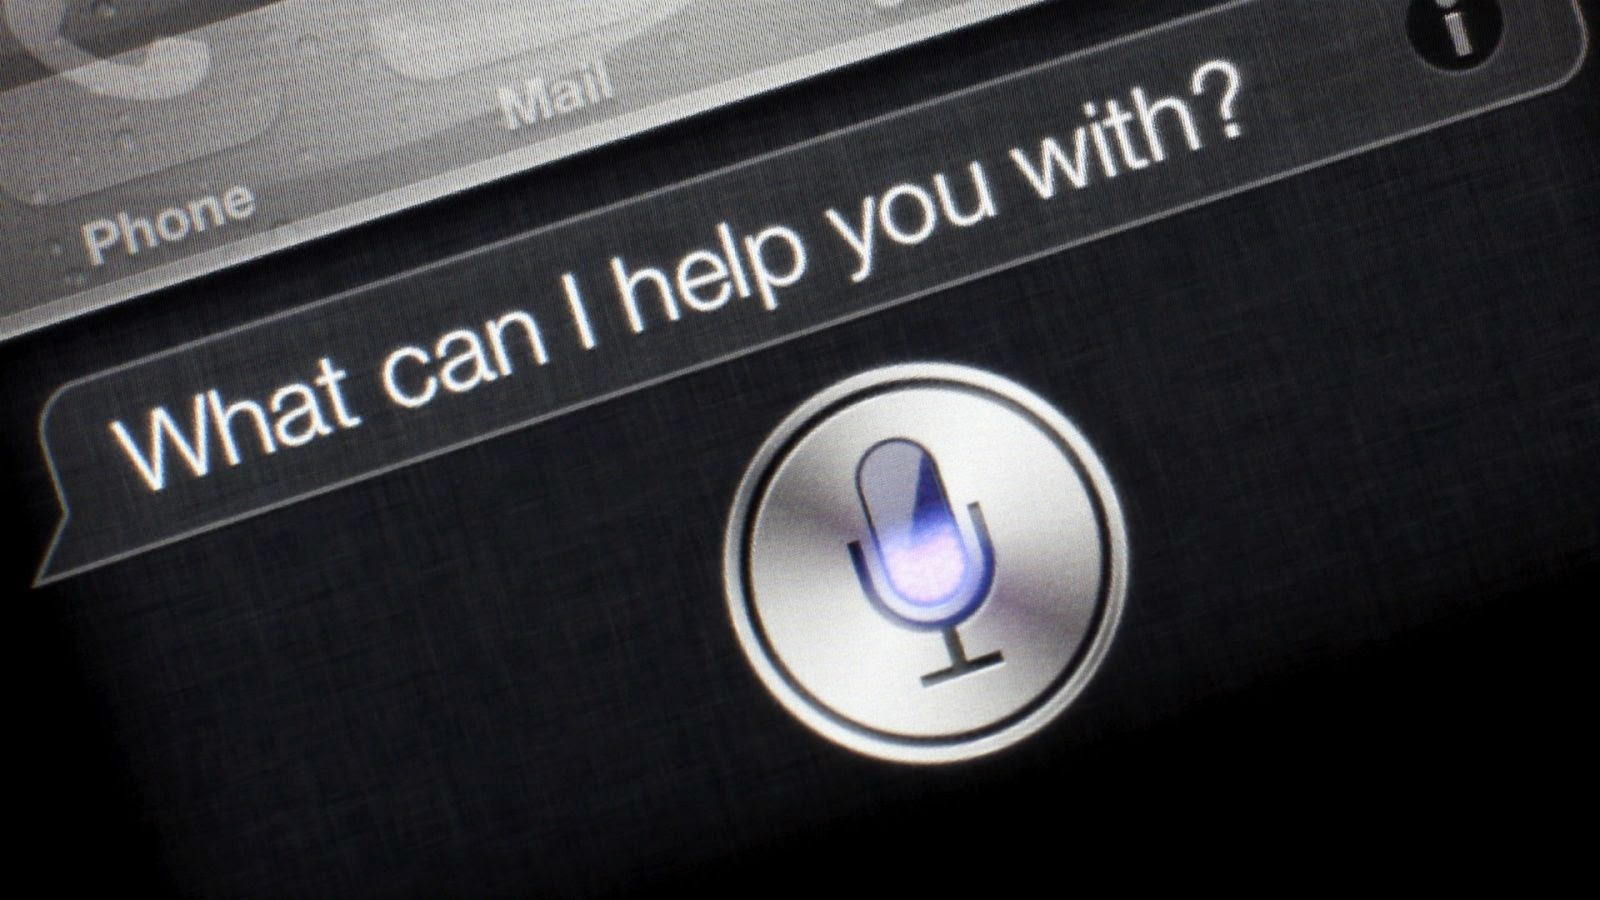 How to Make Siri Respond to Your Voice (Without Pressing Any button)